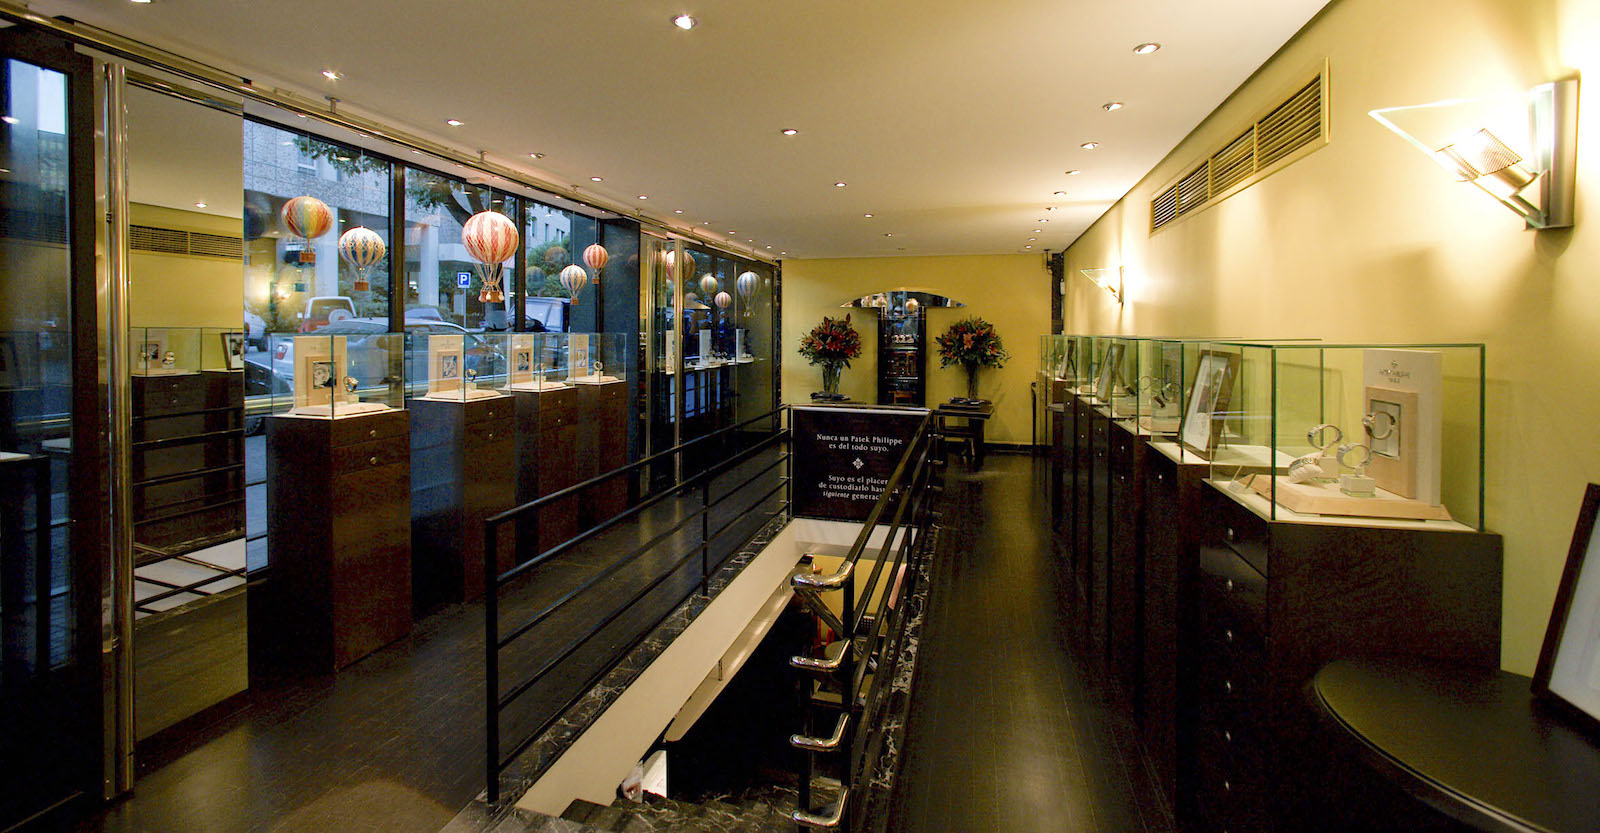 The Watch Gallery - interior